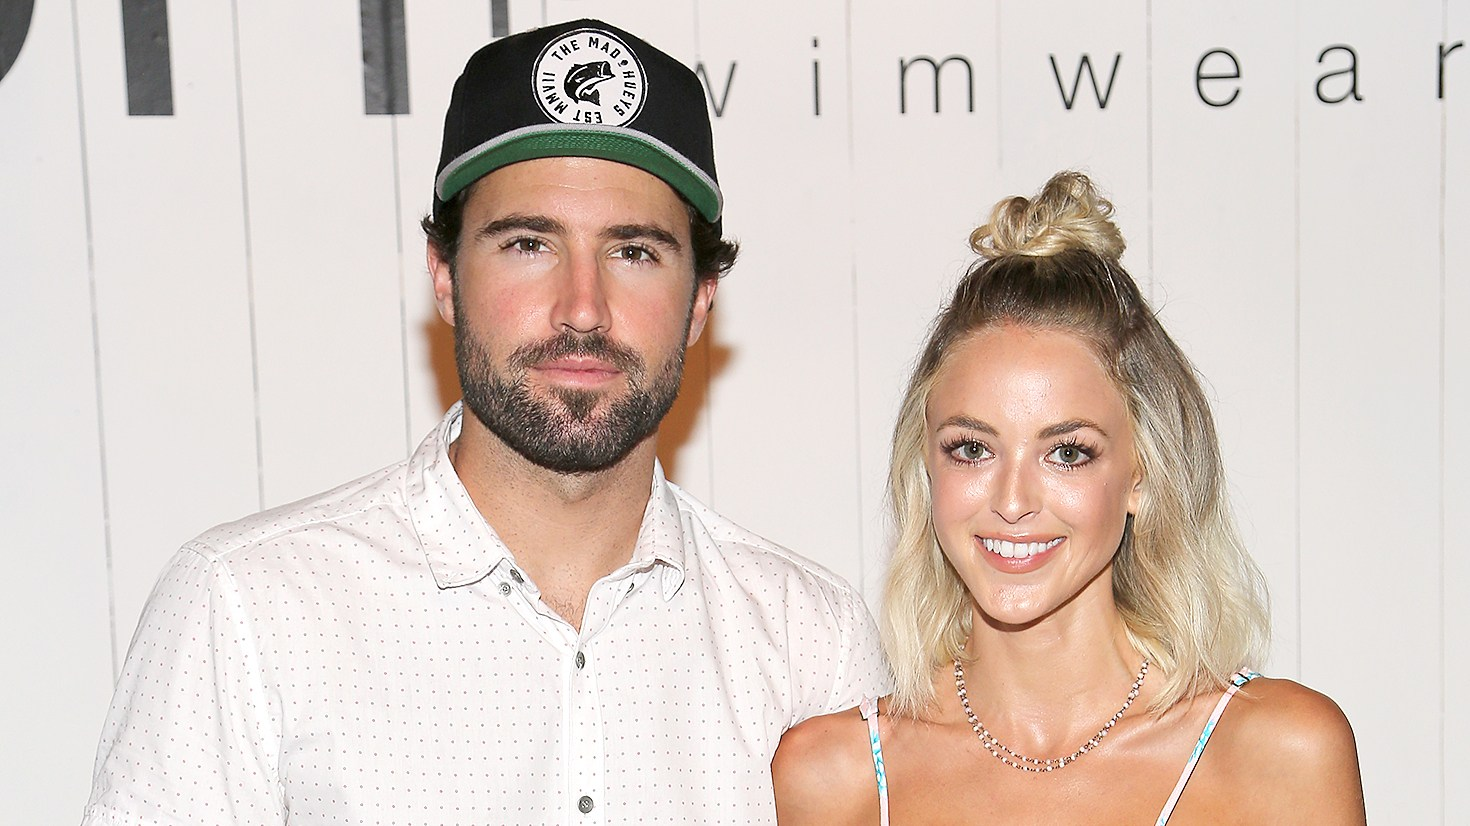 Brody Jenner and Kaitlynn Carter attend the Tori Praver fashion show during FUNKSHION: Fashion Week Miami Beach Swim at the FUNKSHION Tent on July 18, 2015 in Miami Beach, Florida.